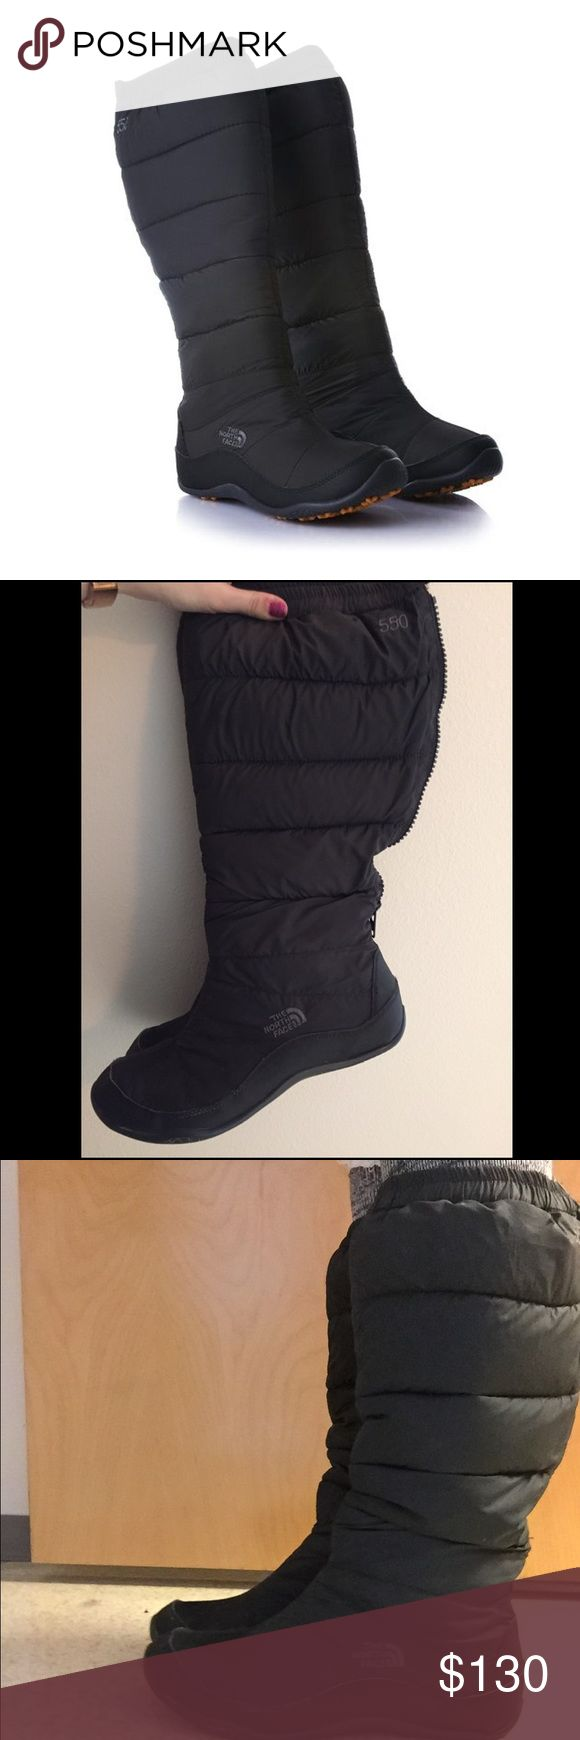 The North Face Nuptse Knee High snow boots Black knee high snow boots from the North Face, purchased at Nordstrom. Worn once or twice and then moved somewhere warmer where I won't be needing them! Still in great condition. They run a bit small, I normally wear wool socks with them and I usually wear a women's size 9. The North Face Shoes Winter & Rain Boots